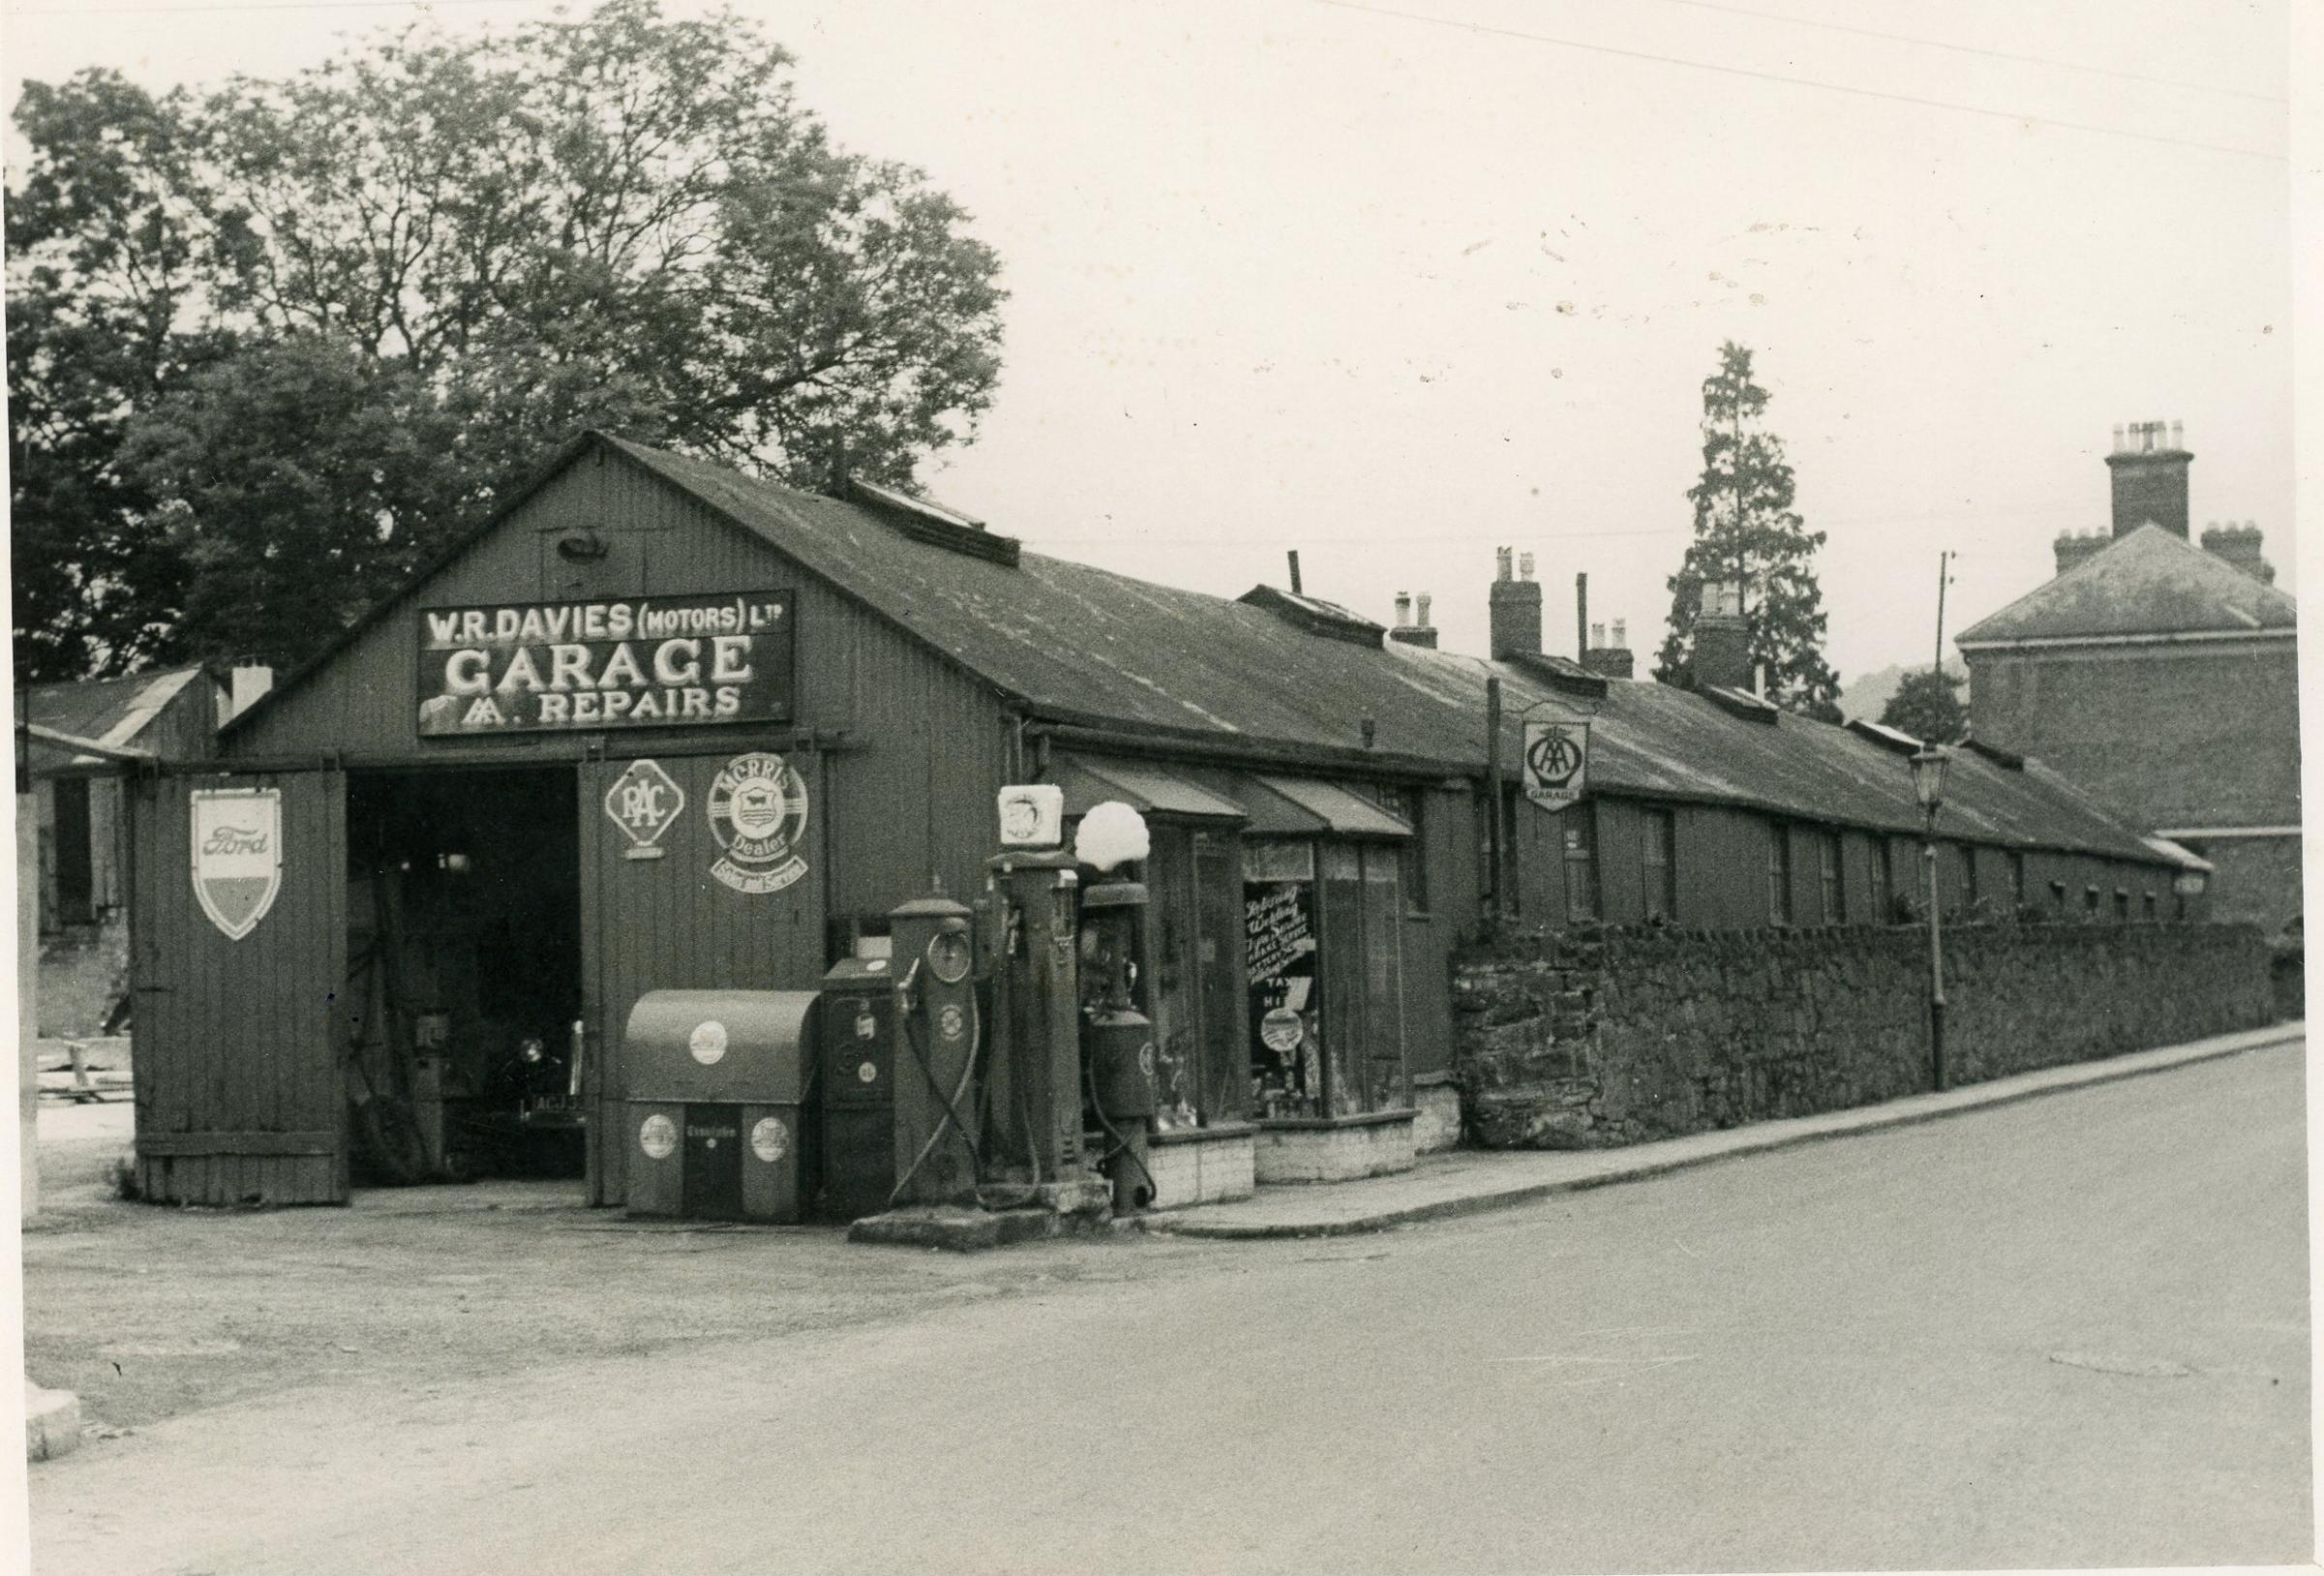 W R Davies old garage on Salop Road, Welshpool.